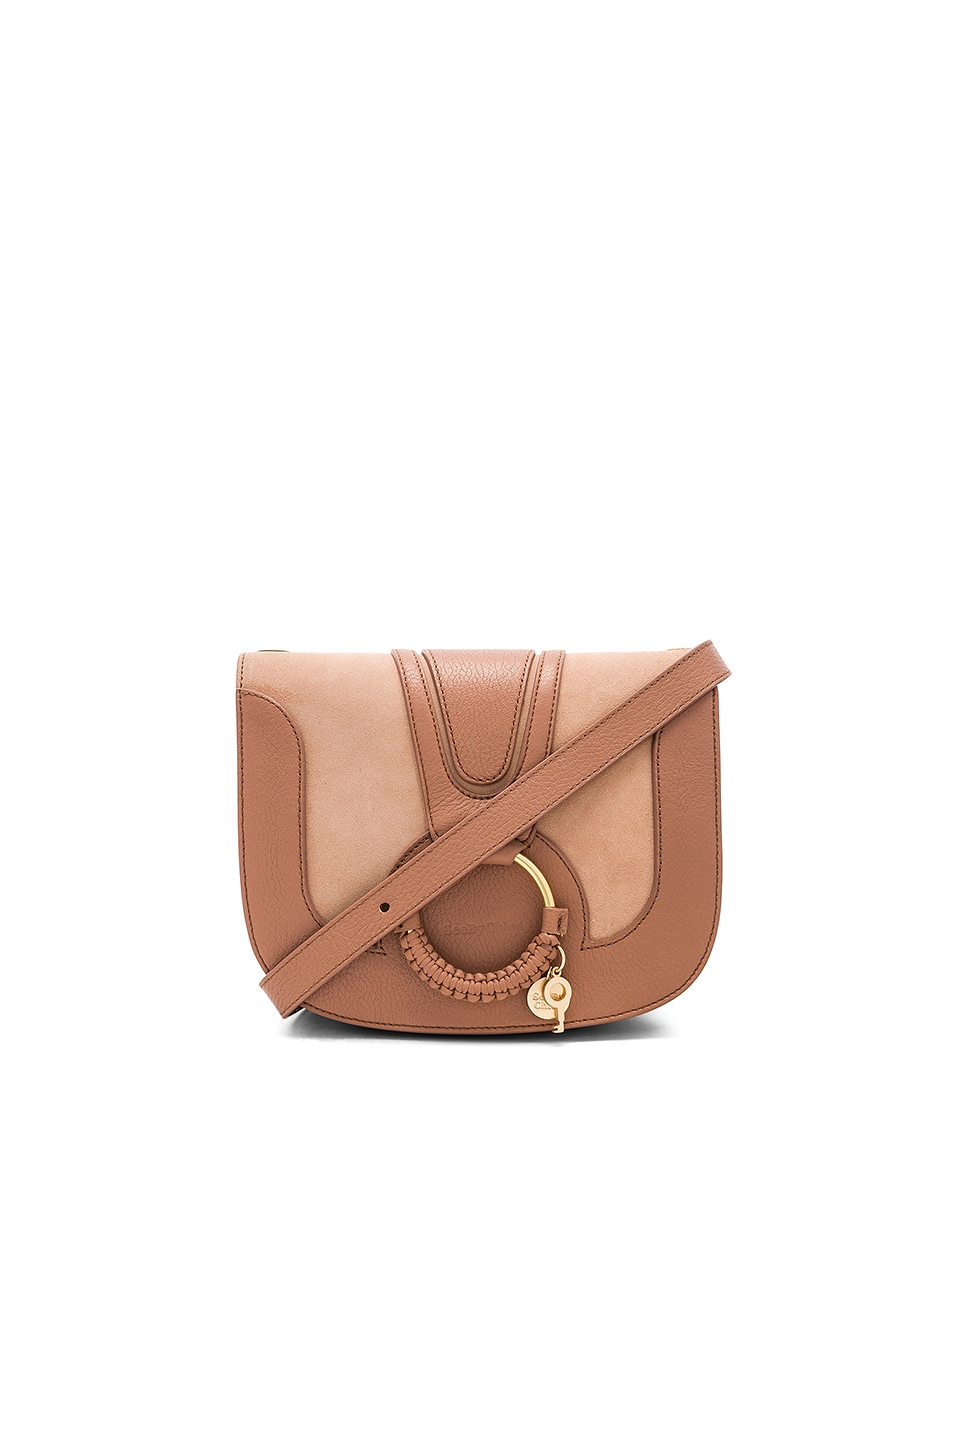 Hana Small Crossbody